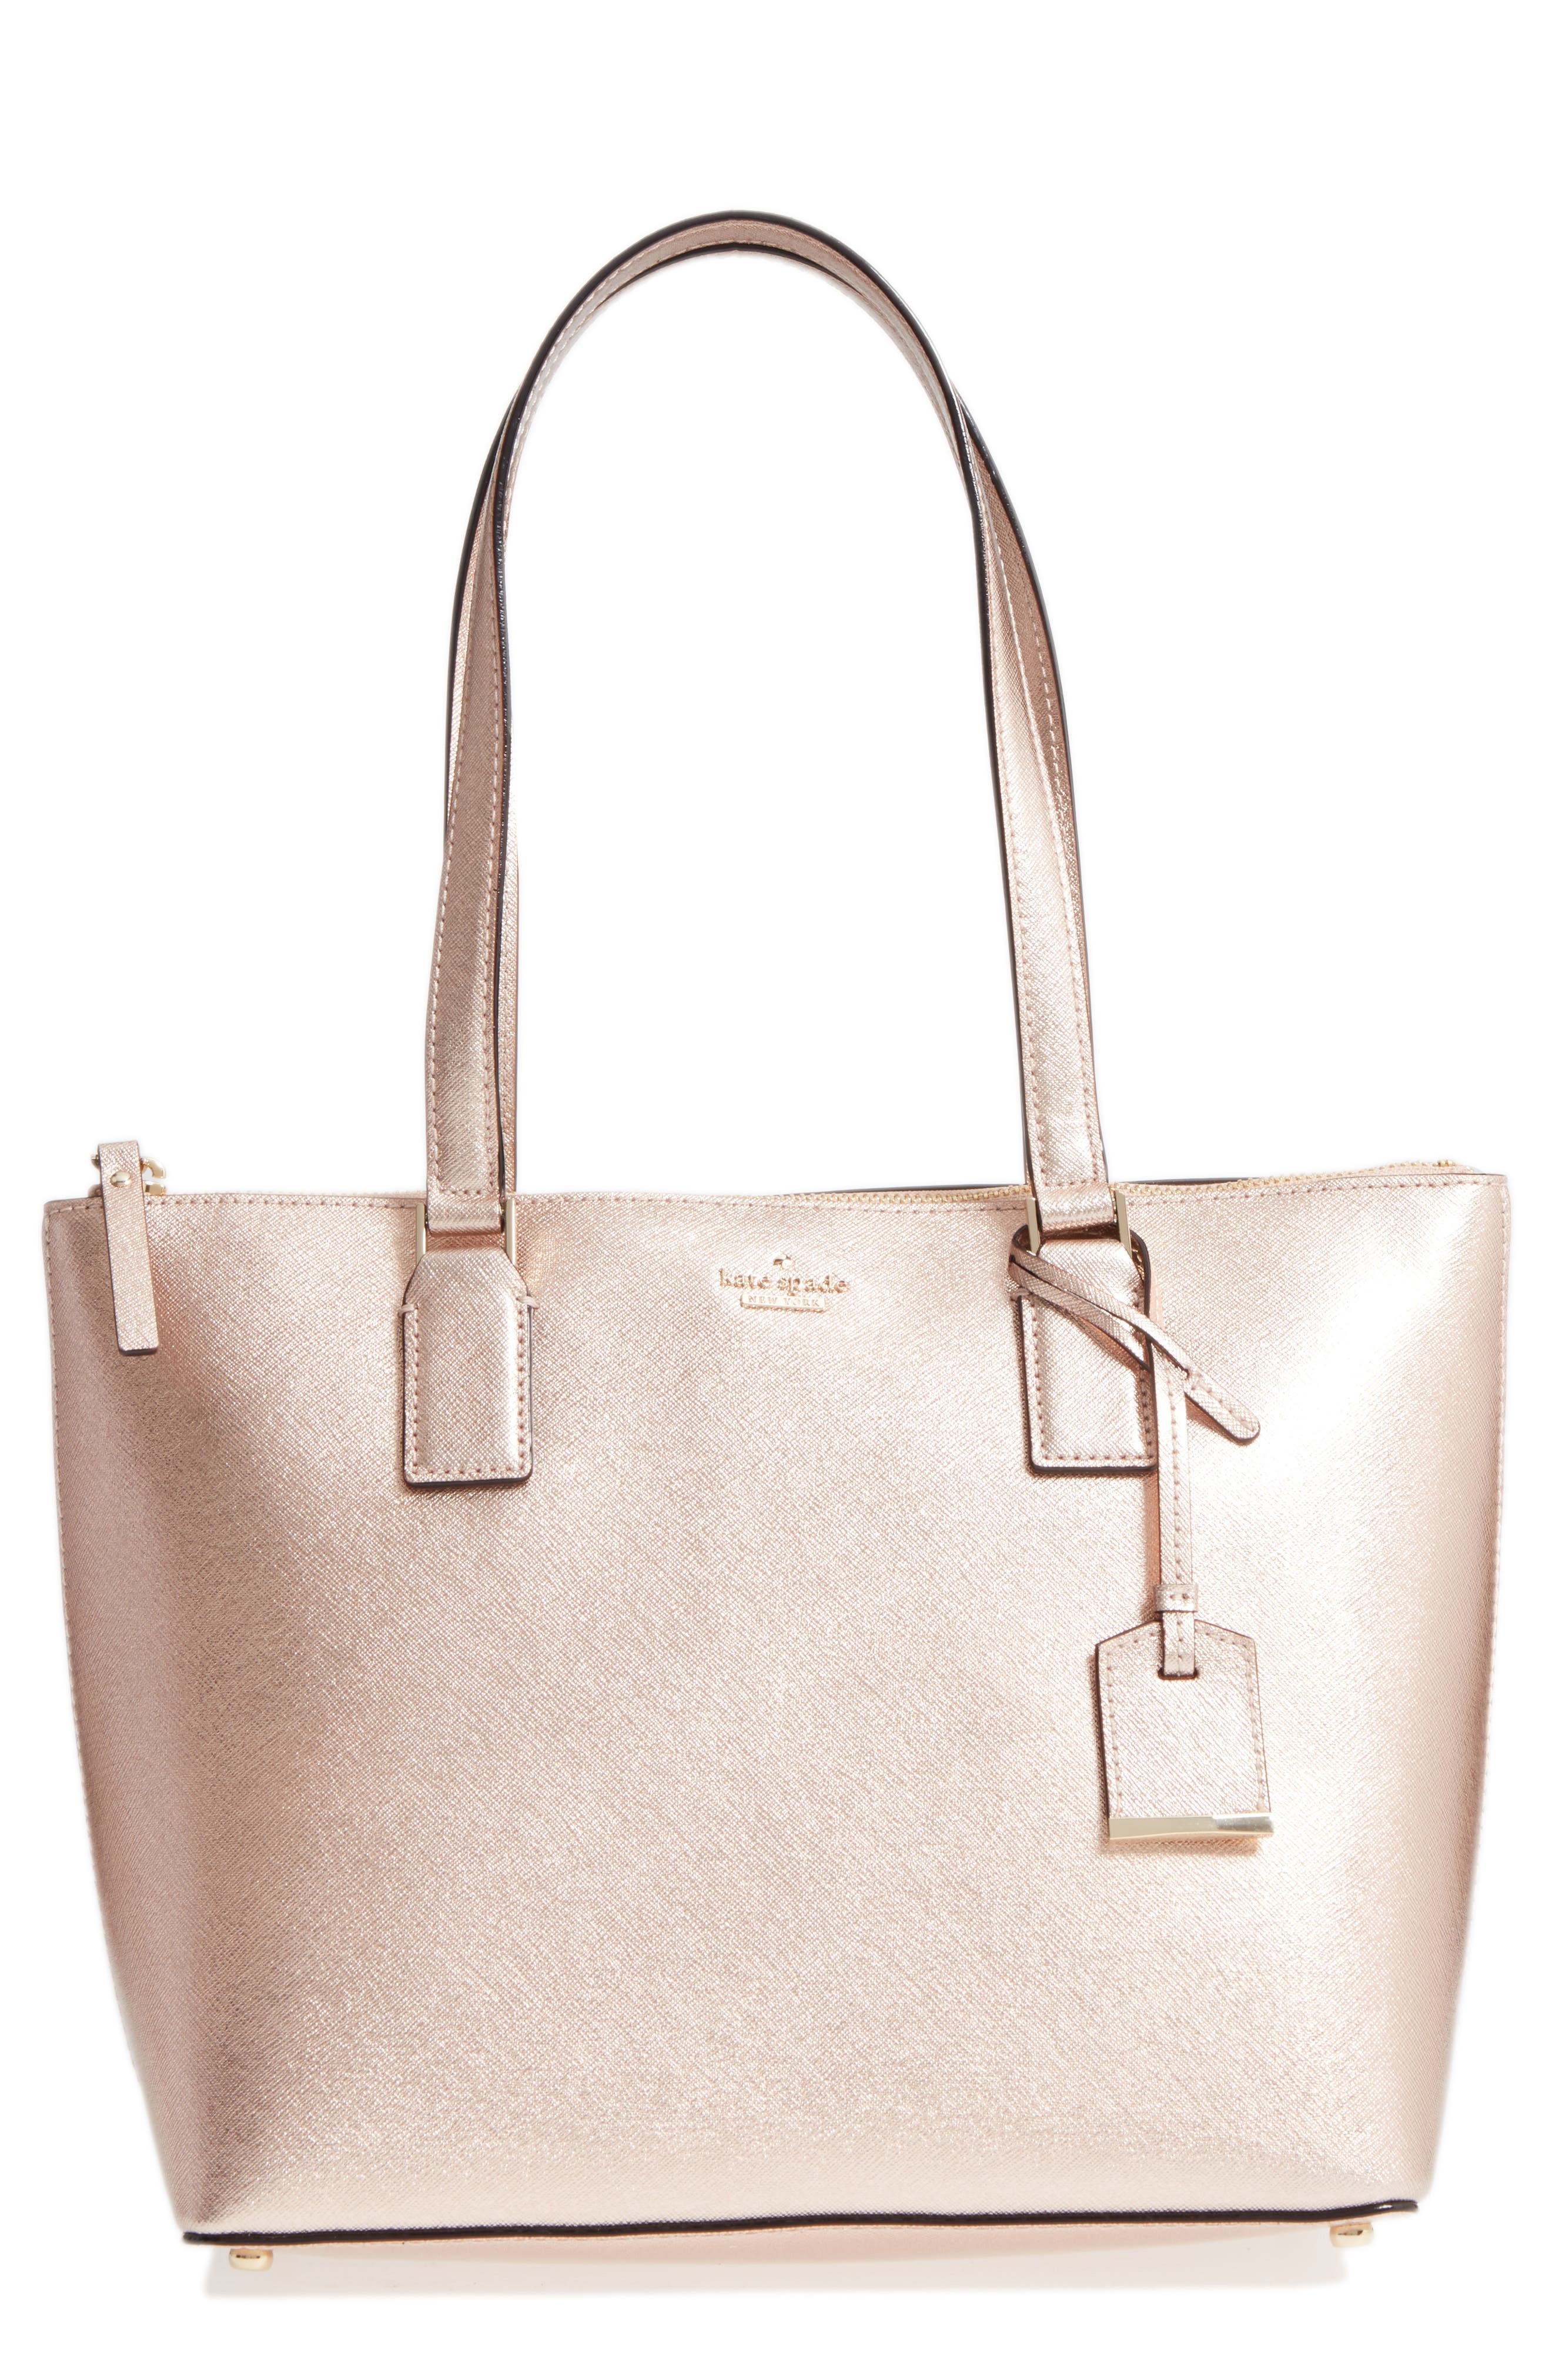 cameron street - small lucie leather tote,                         Main,                         color, 650